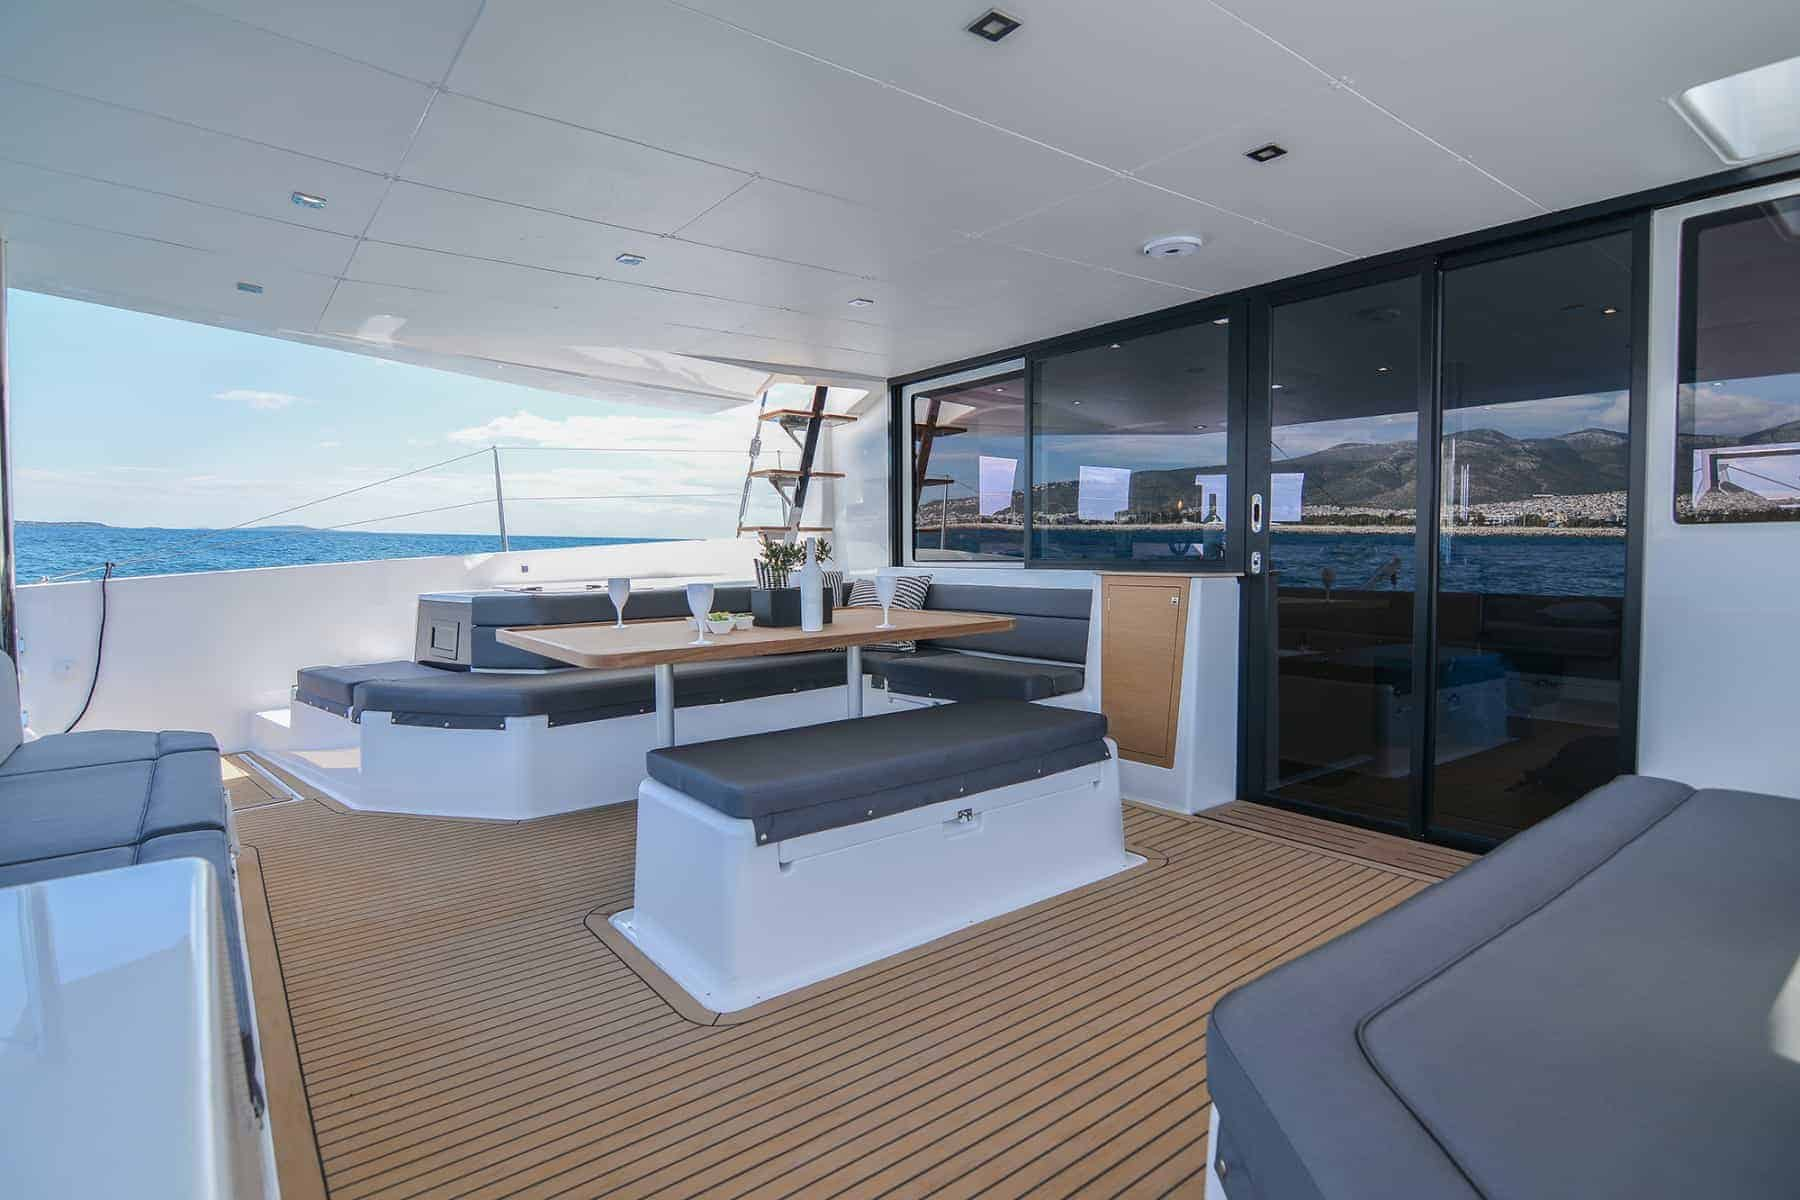 Dufour 48 catarmaran cockpit dining area